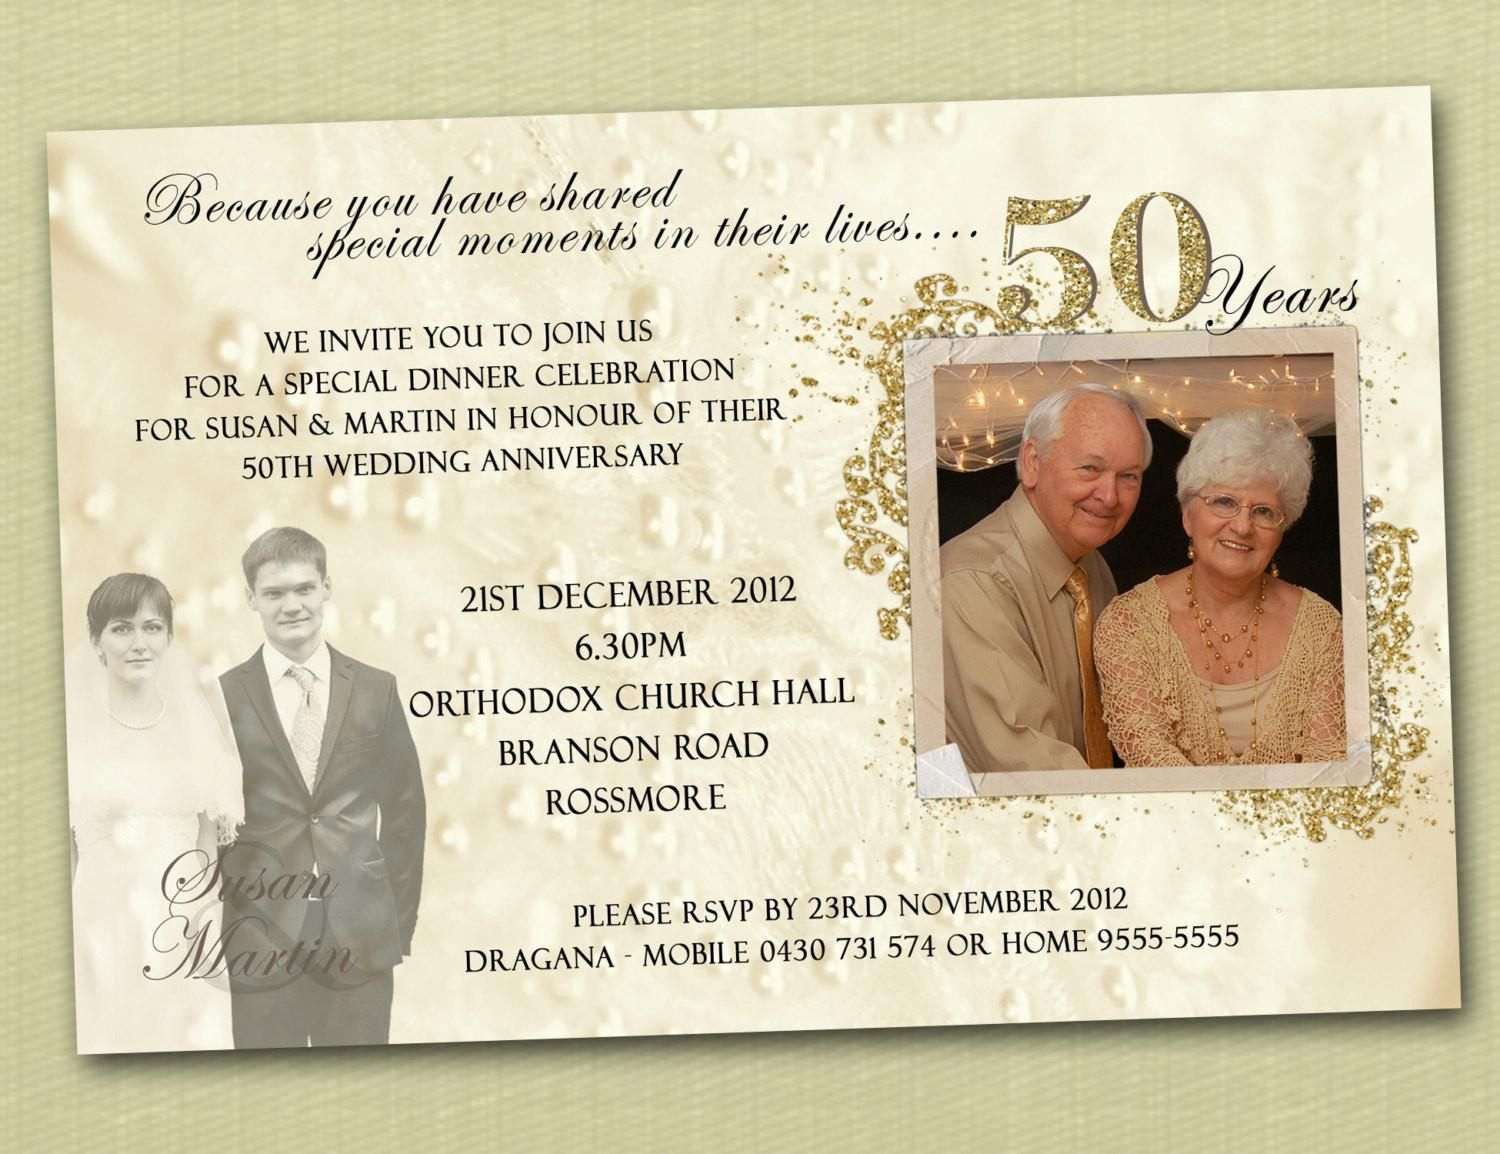 Golden wedding anniversary invitations golden wedding anniversary golden wedding anniversary invitations golden wedding anniversary invitations templates superb invitation superb invitation stopboris